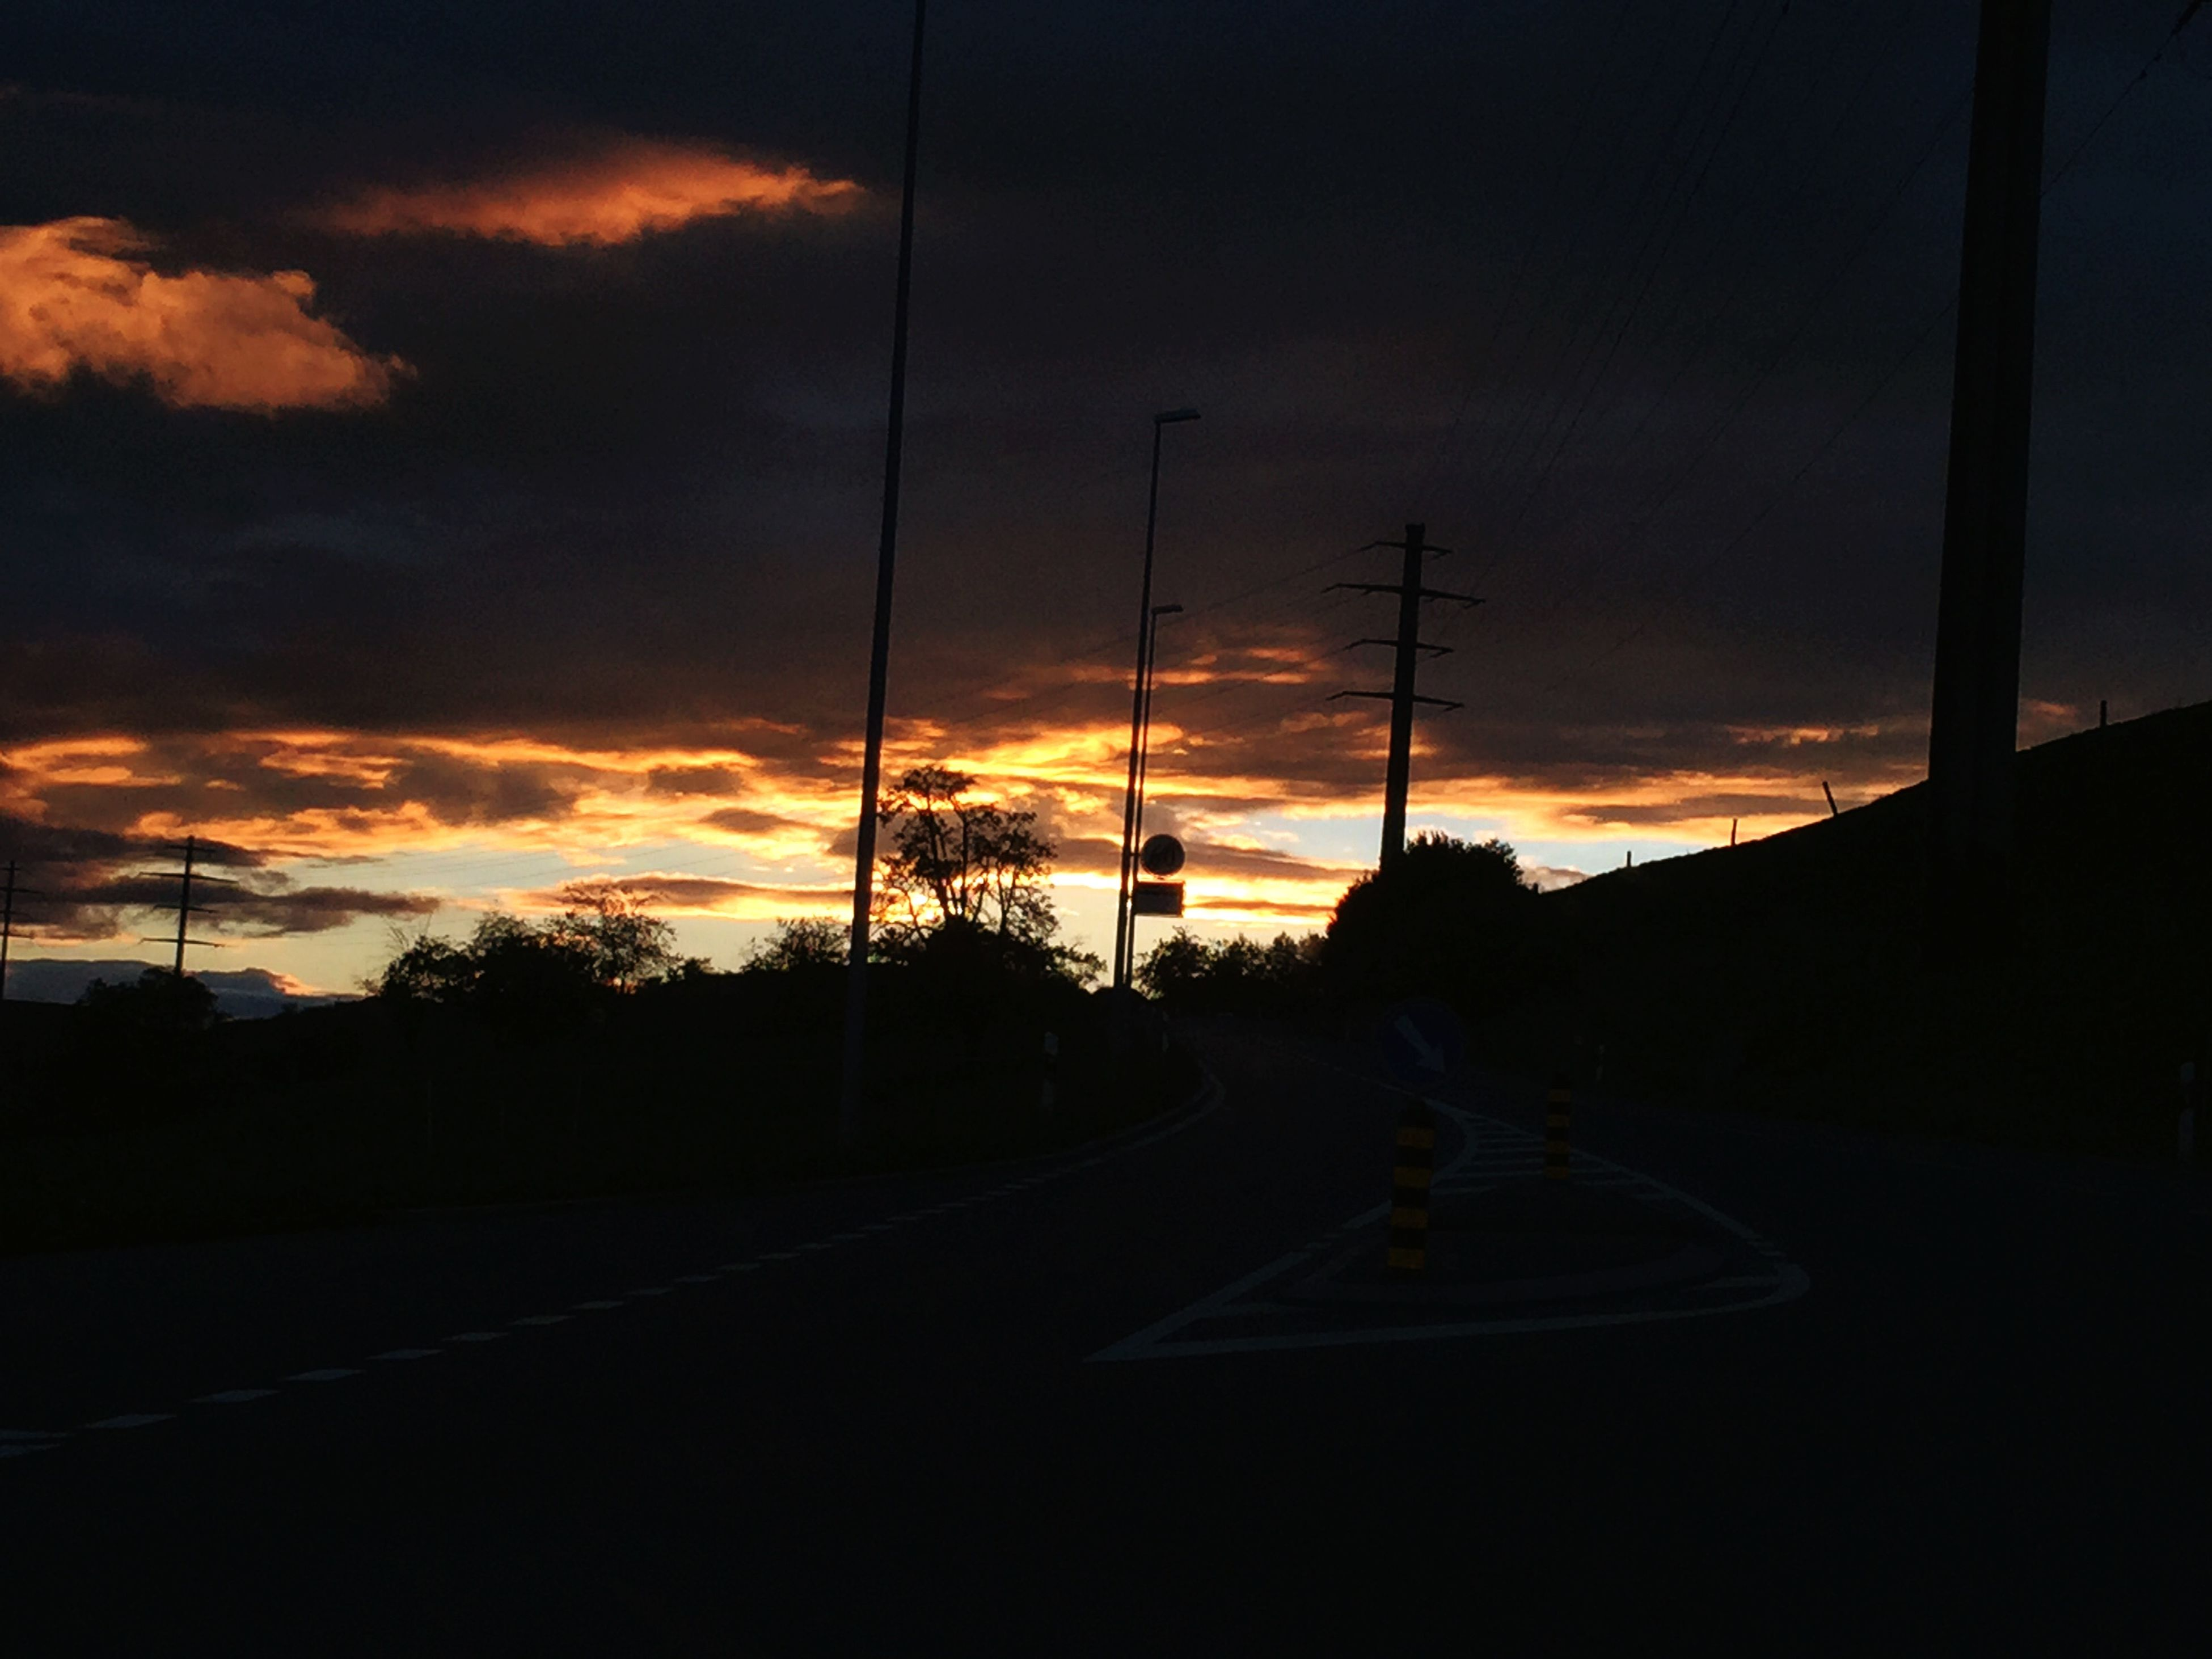 sunset, transportation, sky, silhouette, road, cloud - sky, car, the way forward, orange color, mode of transport, land vehicle, street, cloud, street light, dark, diminishing perspective, beauty in nature, nature, dusk, scenics